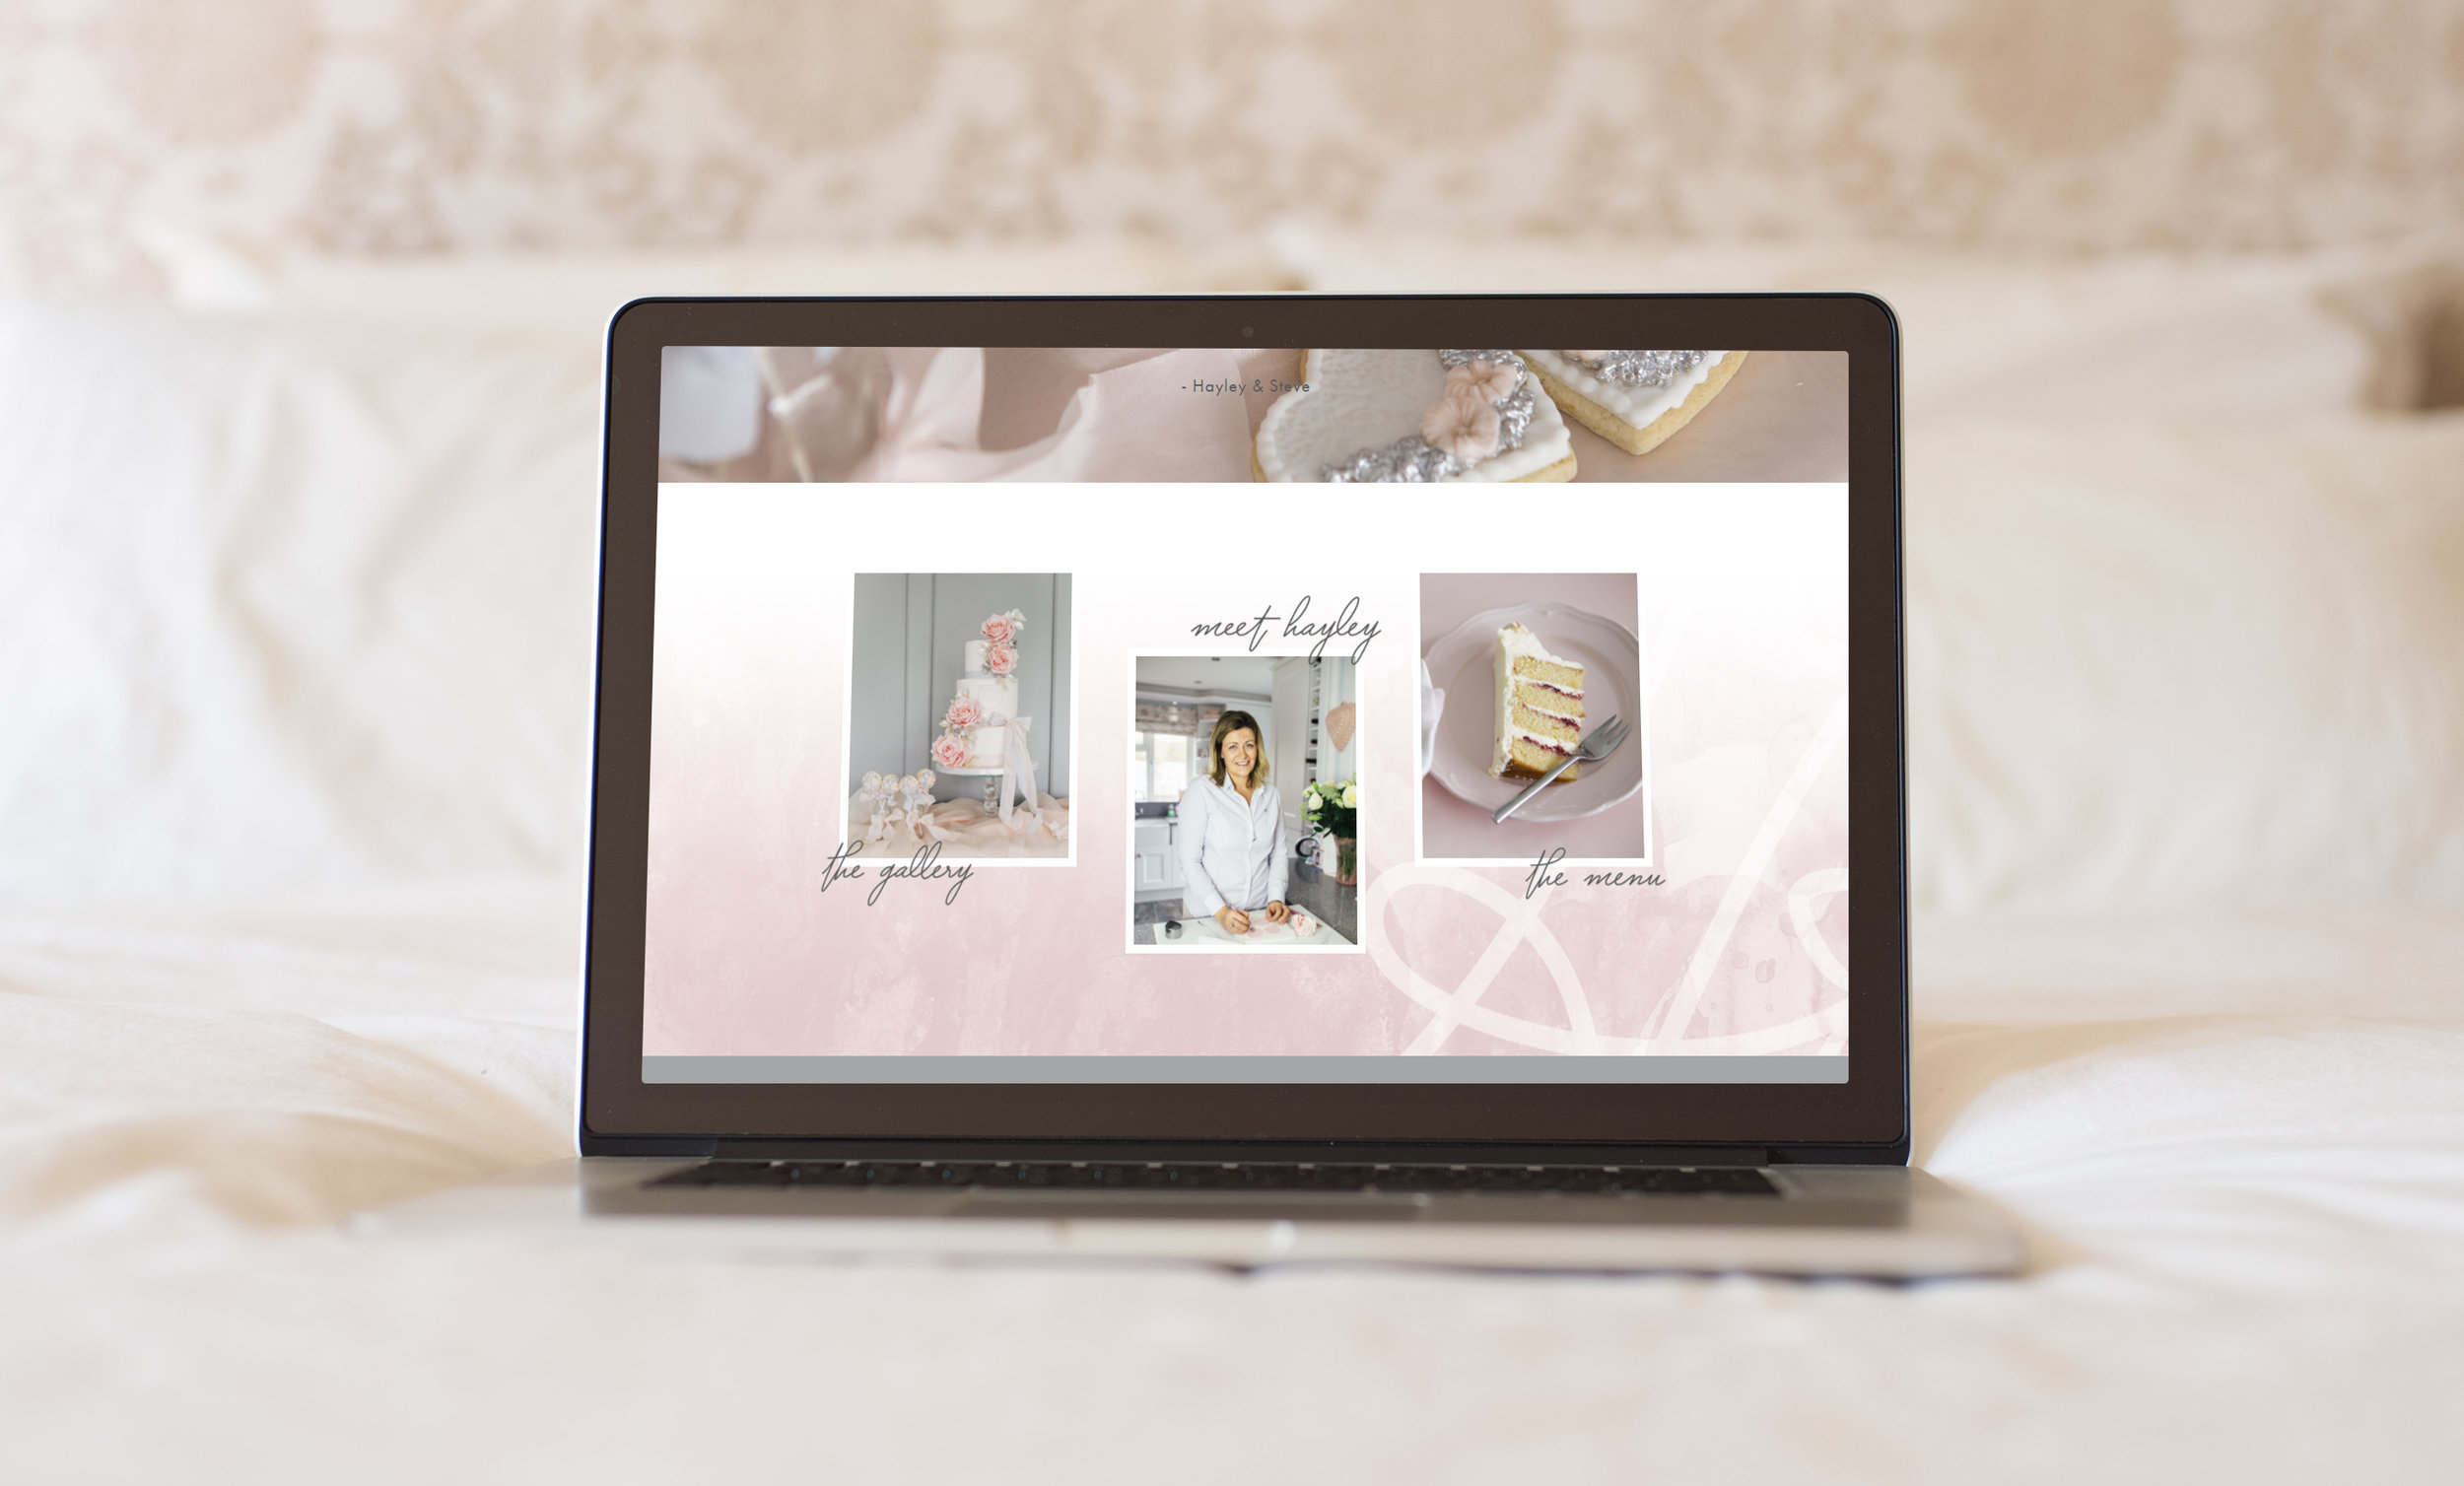 Custom web design and branding of Hayley Elizabeth Cake Design by Verity Road. Feminine branding, feminine web design, luxury branding, luxury web design, website design, female entrepreneur, wedding professional, wedding business branding. Logo design, brand elements, feminine color palette, patterns and textures.